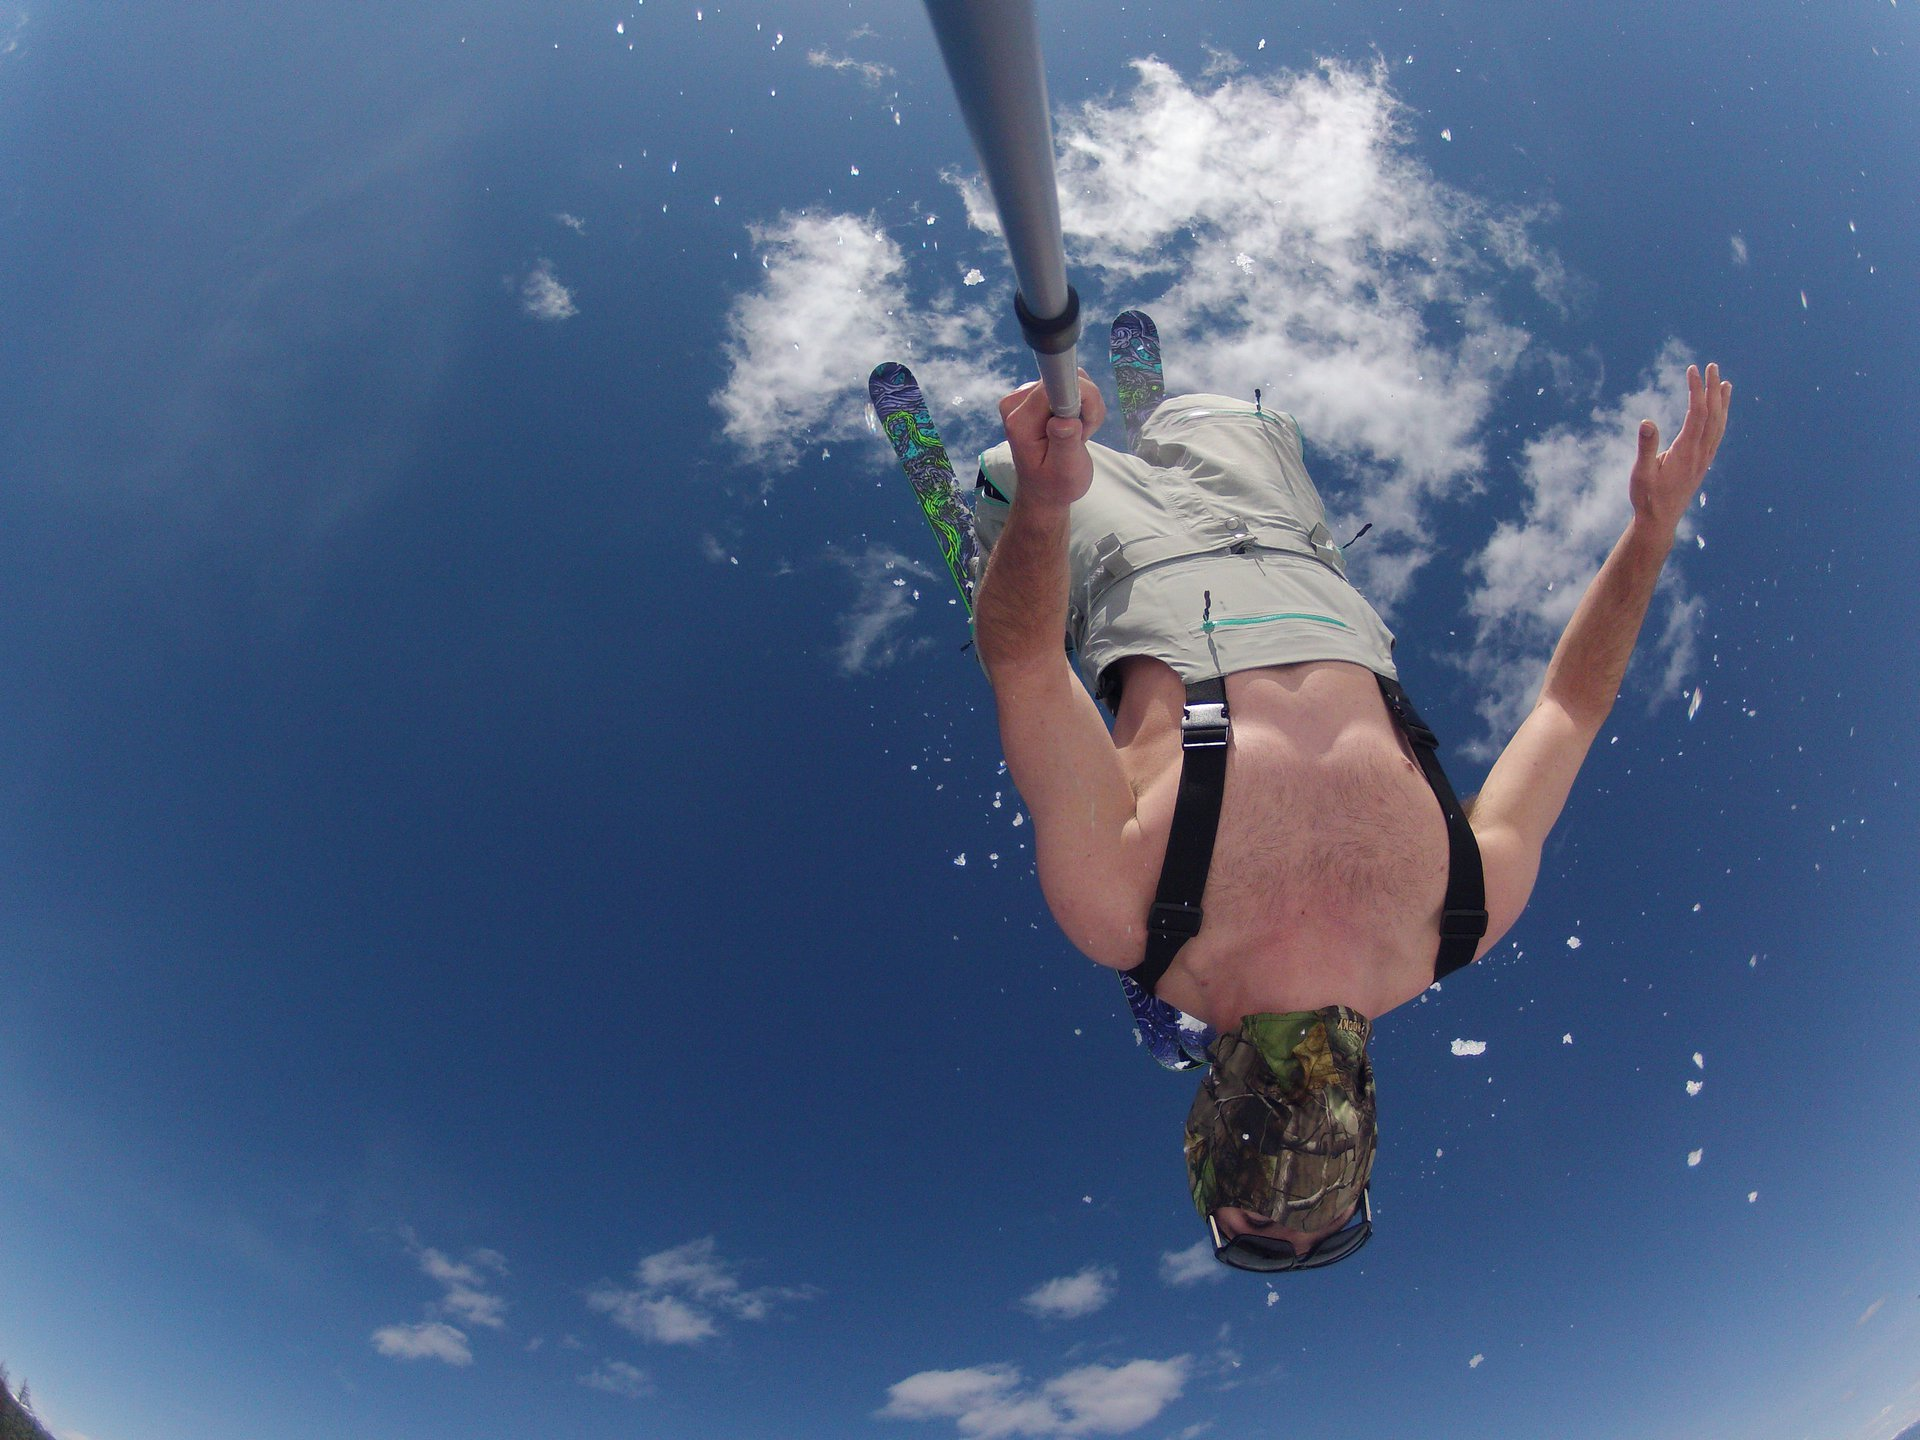 A backflip a day keeps the doctor away